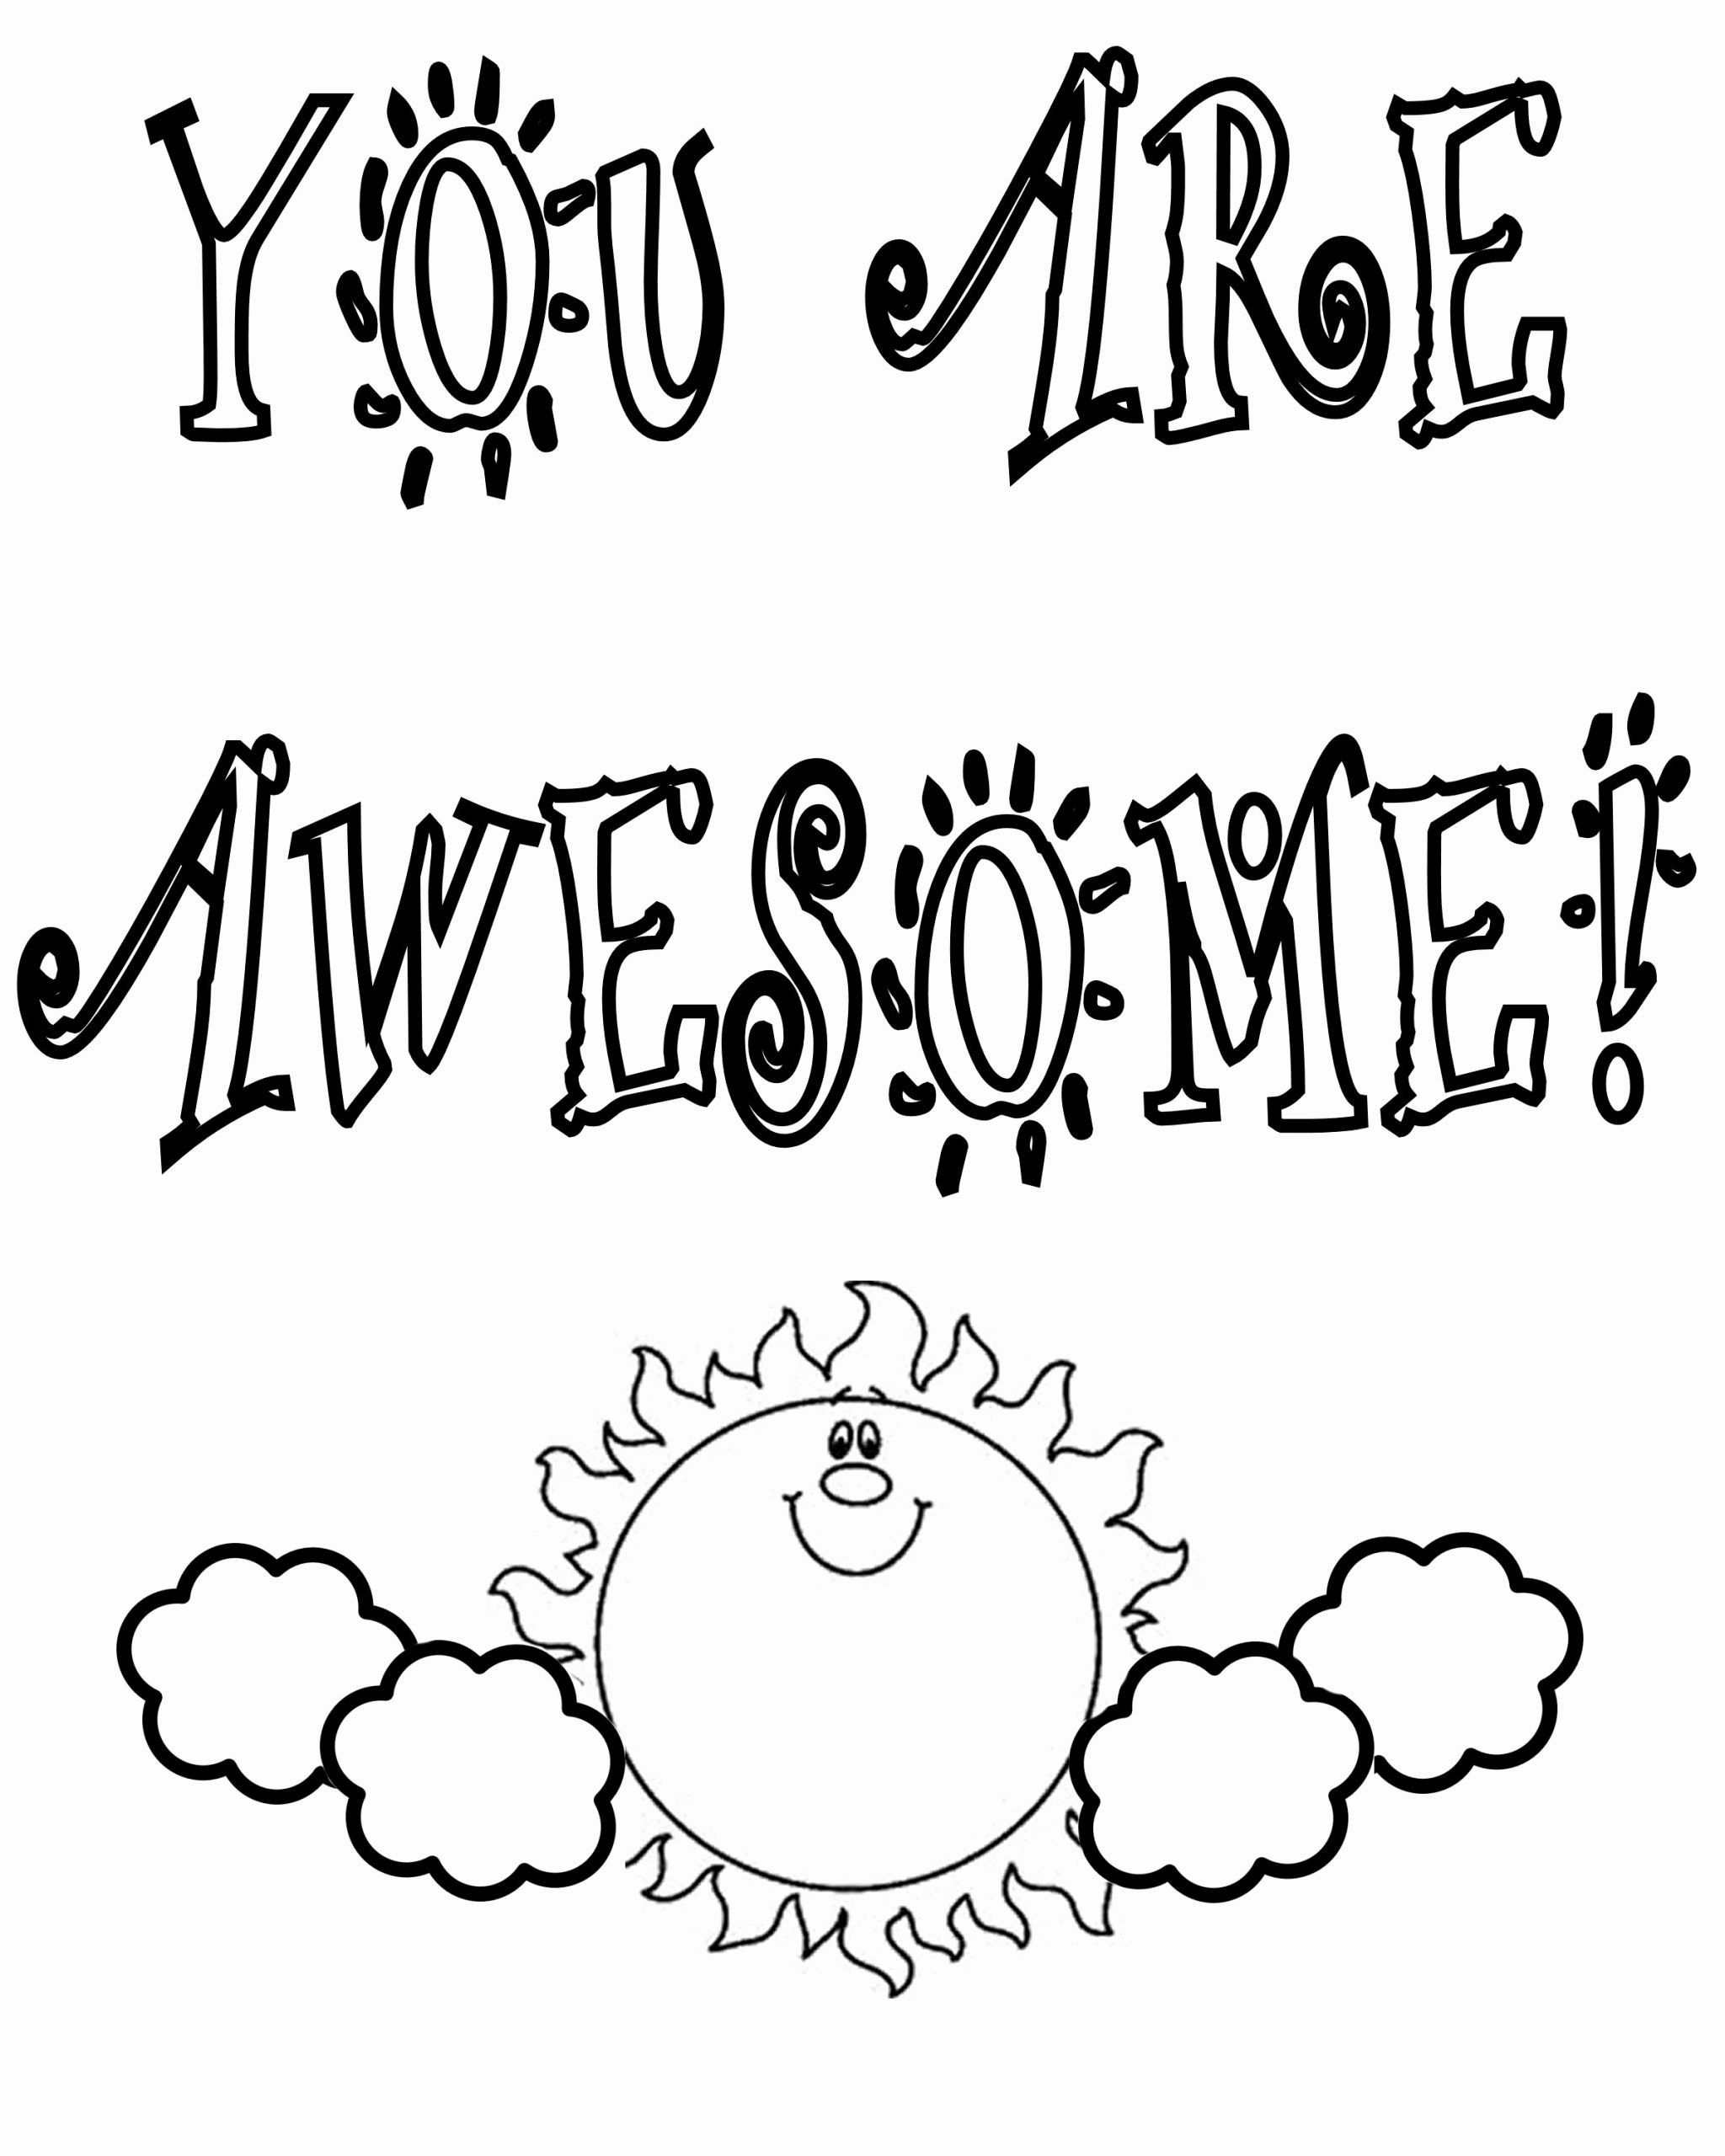 Thank You Coloring Page Awesome Thank You Coloring Pages Thank You Cards From Kids Free Teacher Appreciation Printables Printable Coloring Pages